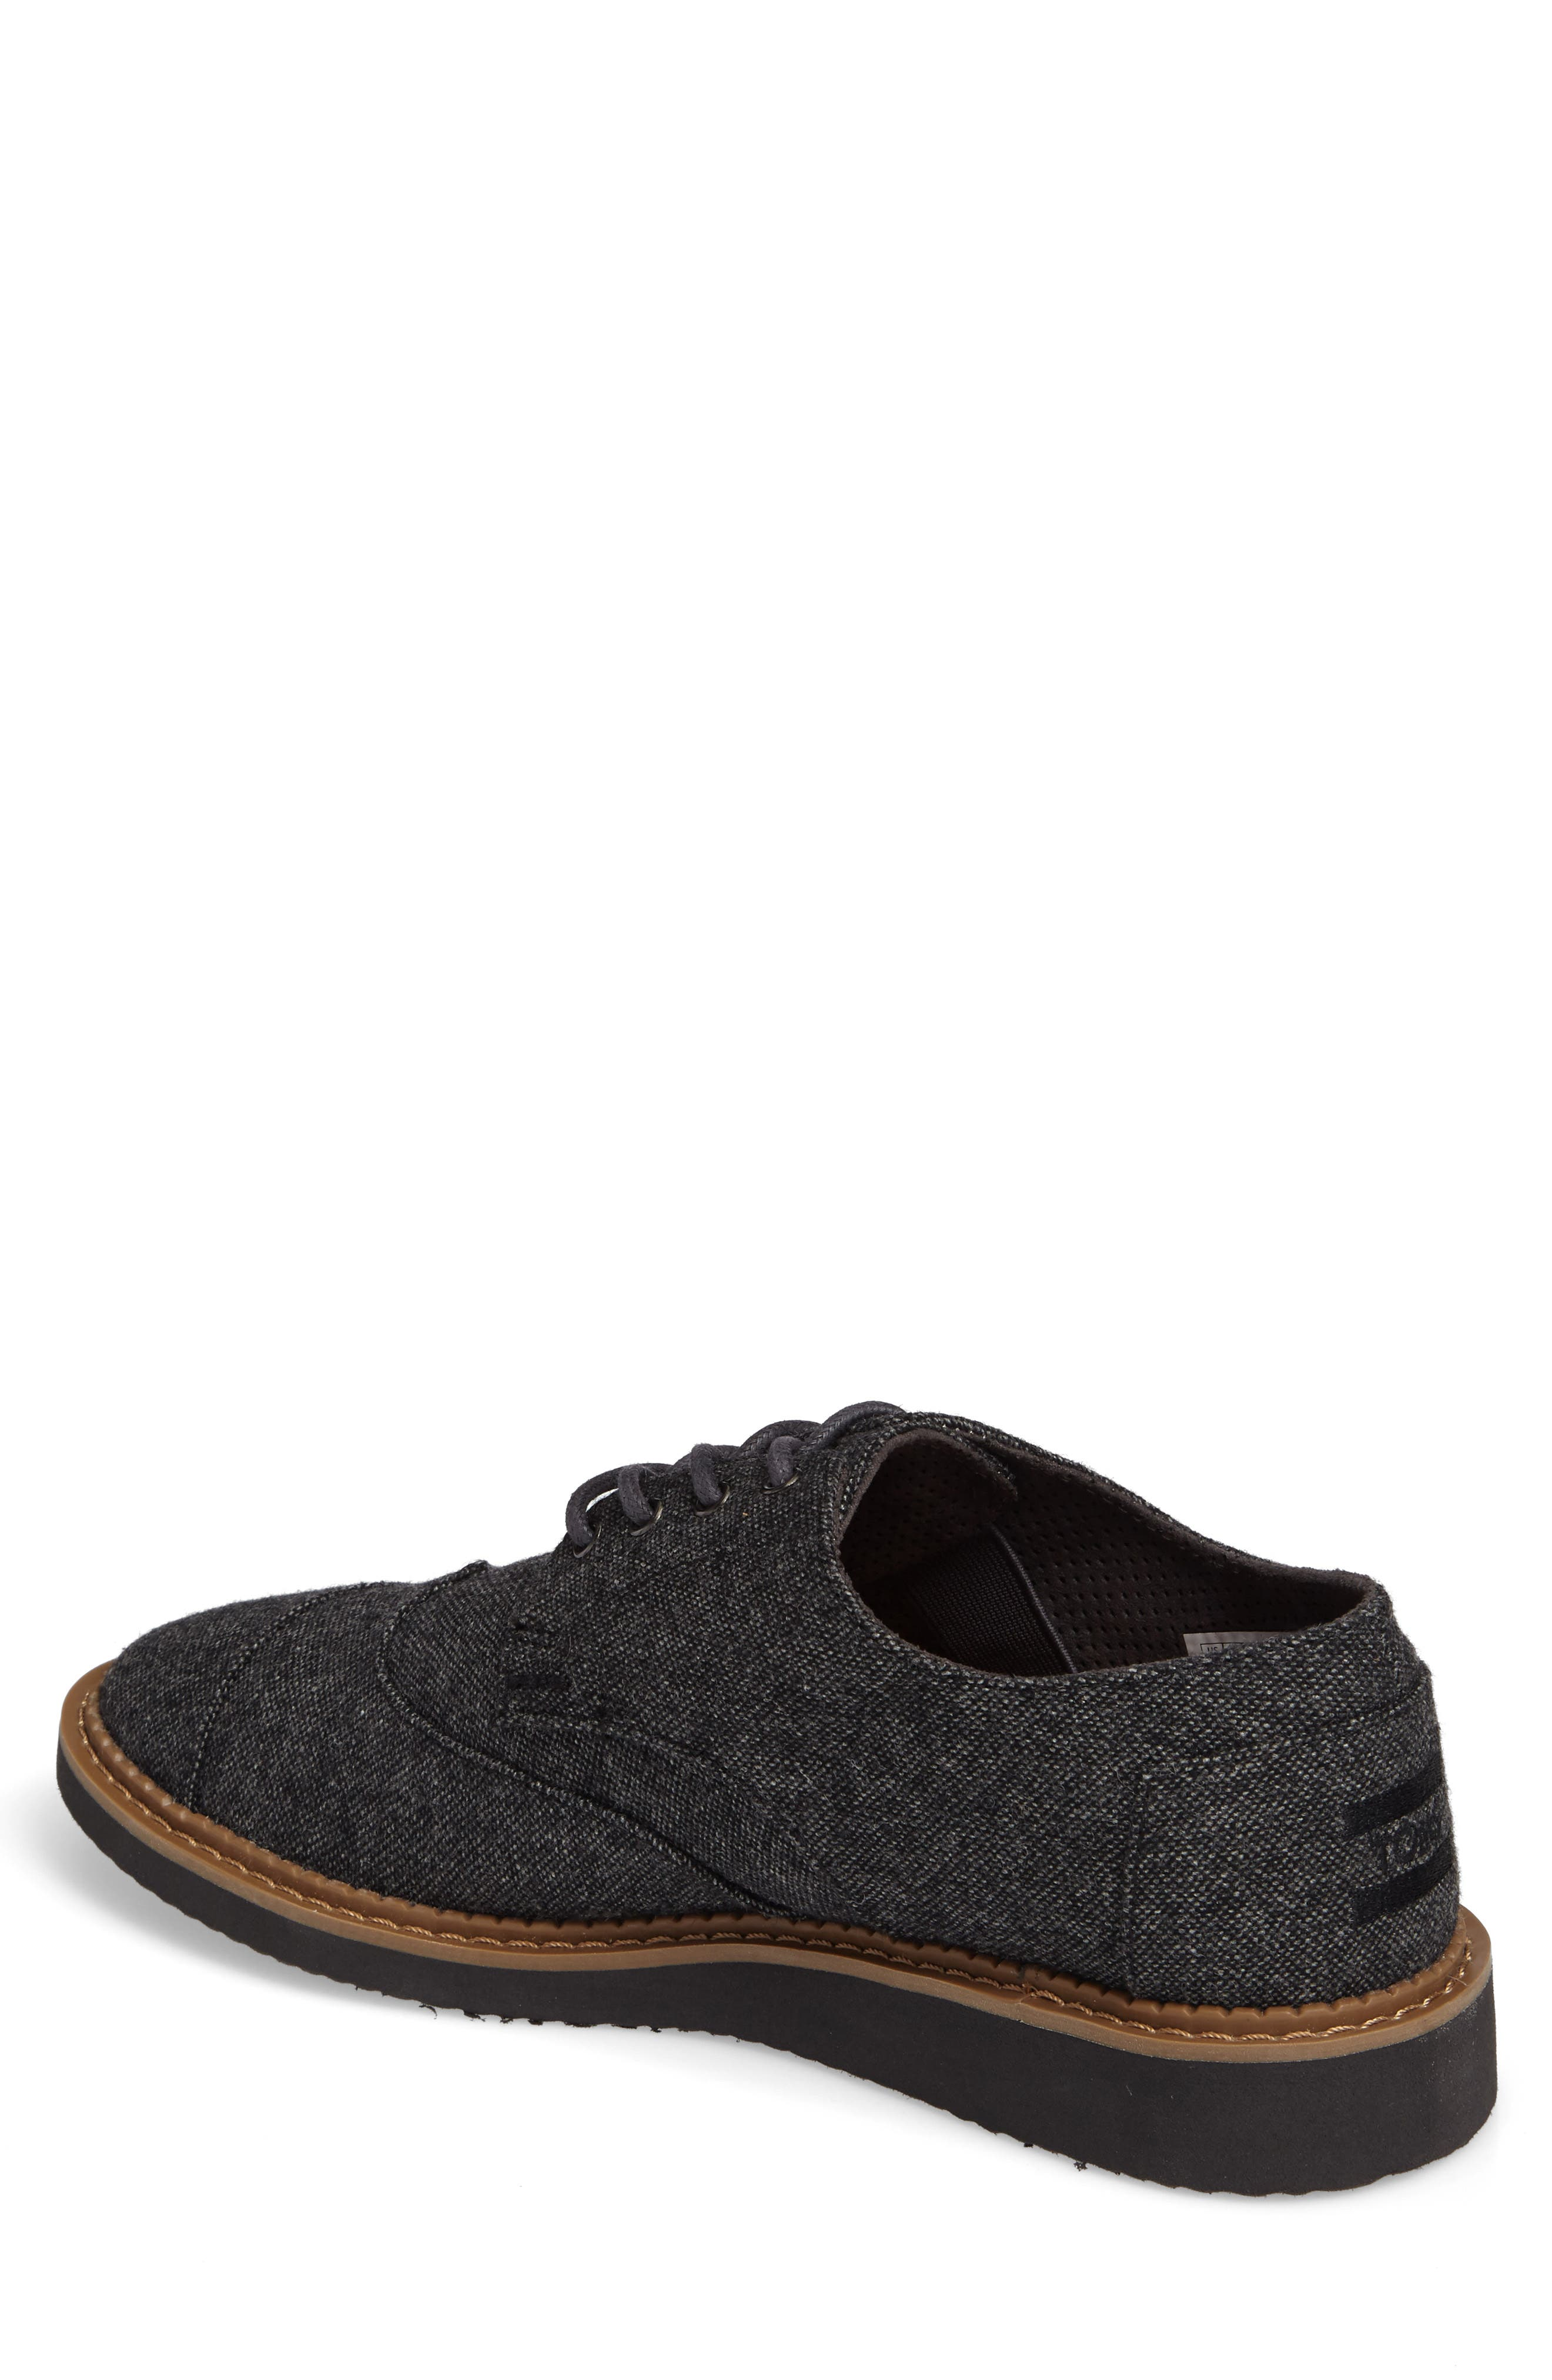 'Classic Brogue' Cotton Twill Derby,                             Alternate thumbnail 23, color,